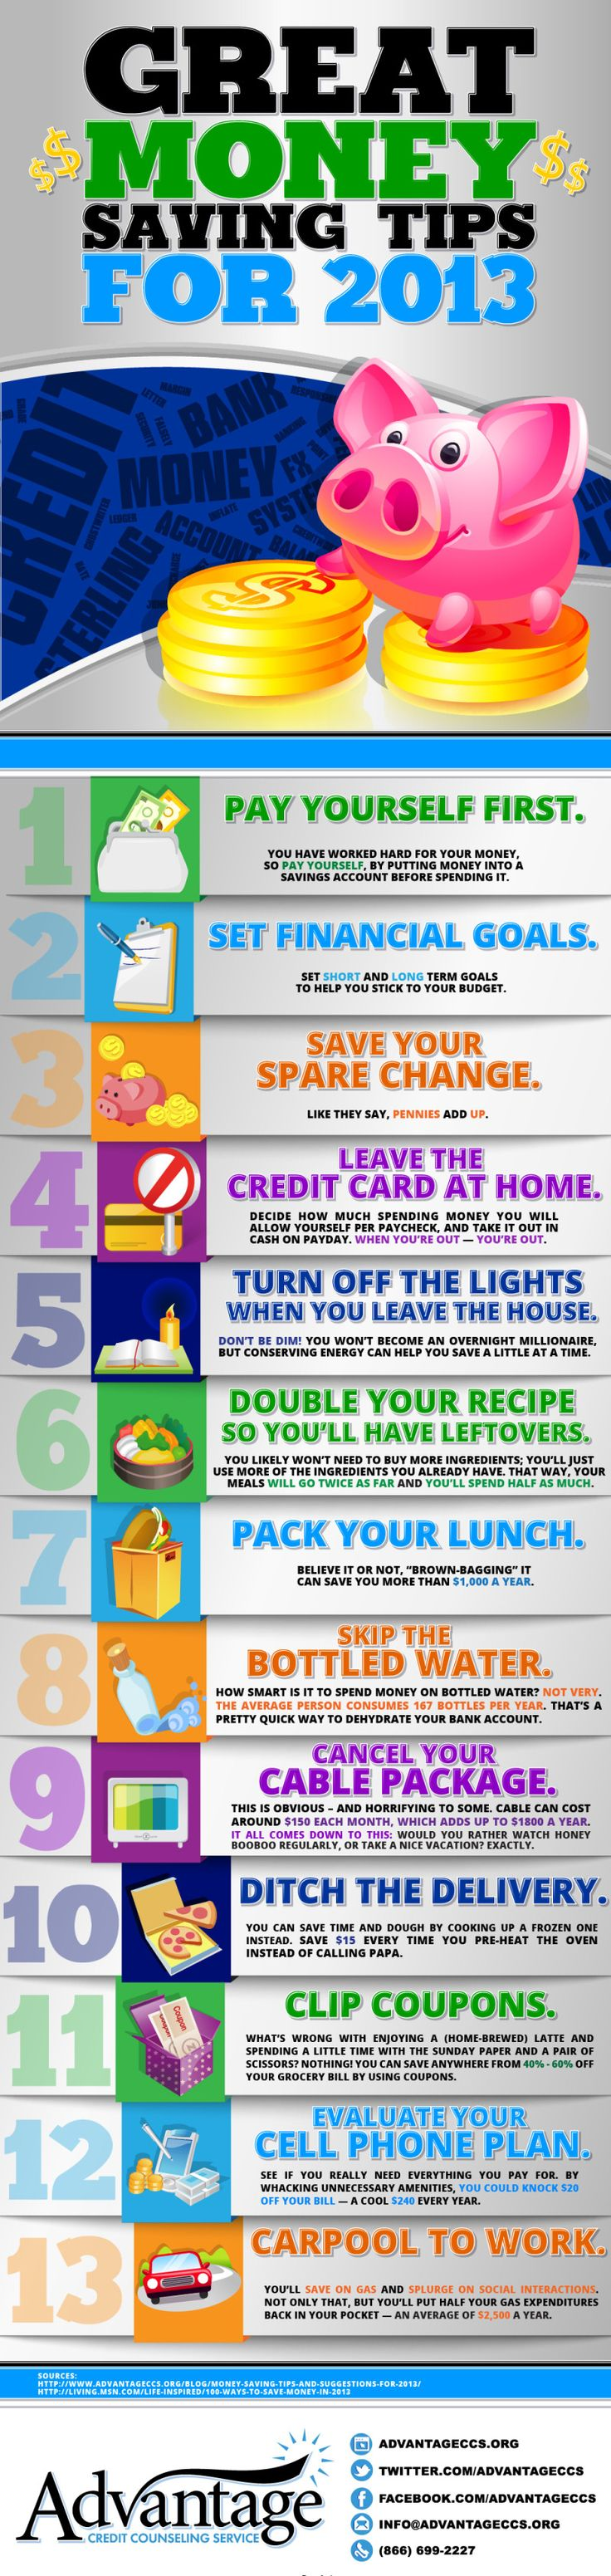 Great Money Saving Tips for 2013: An Infographic on Managing Money